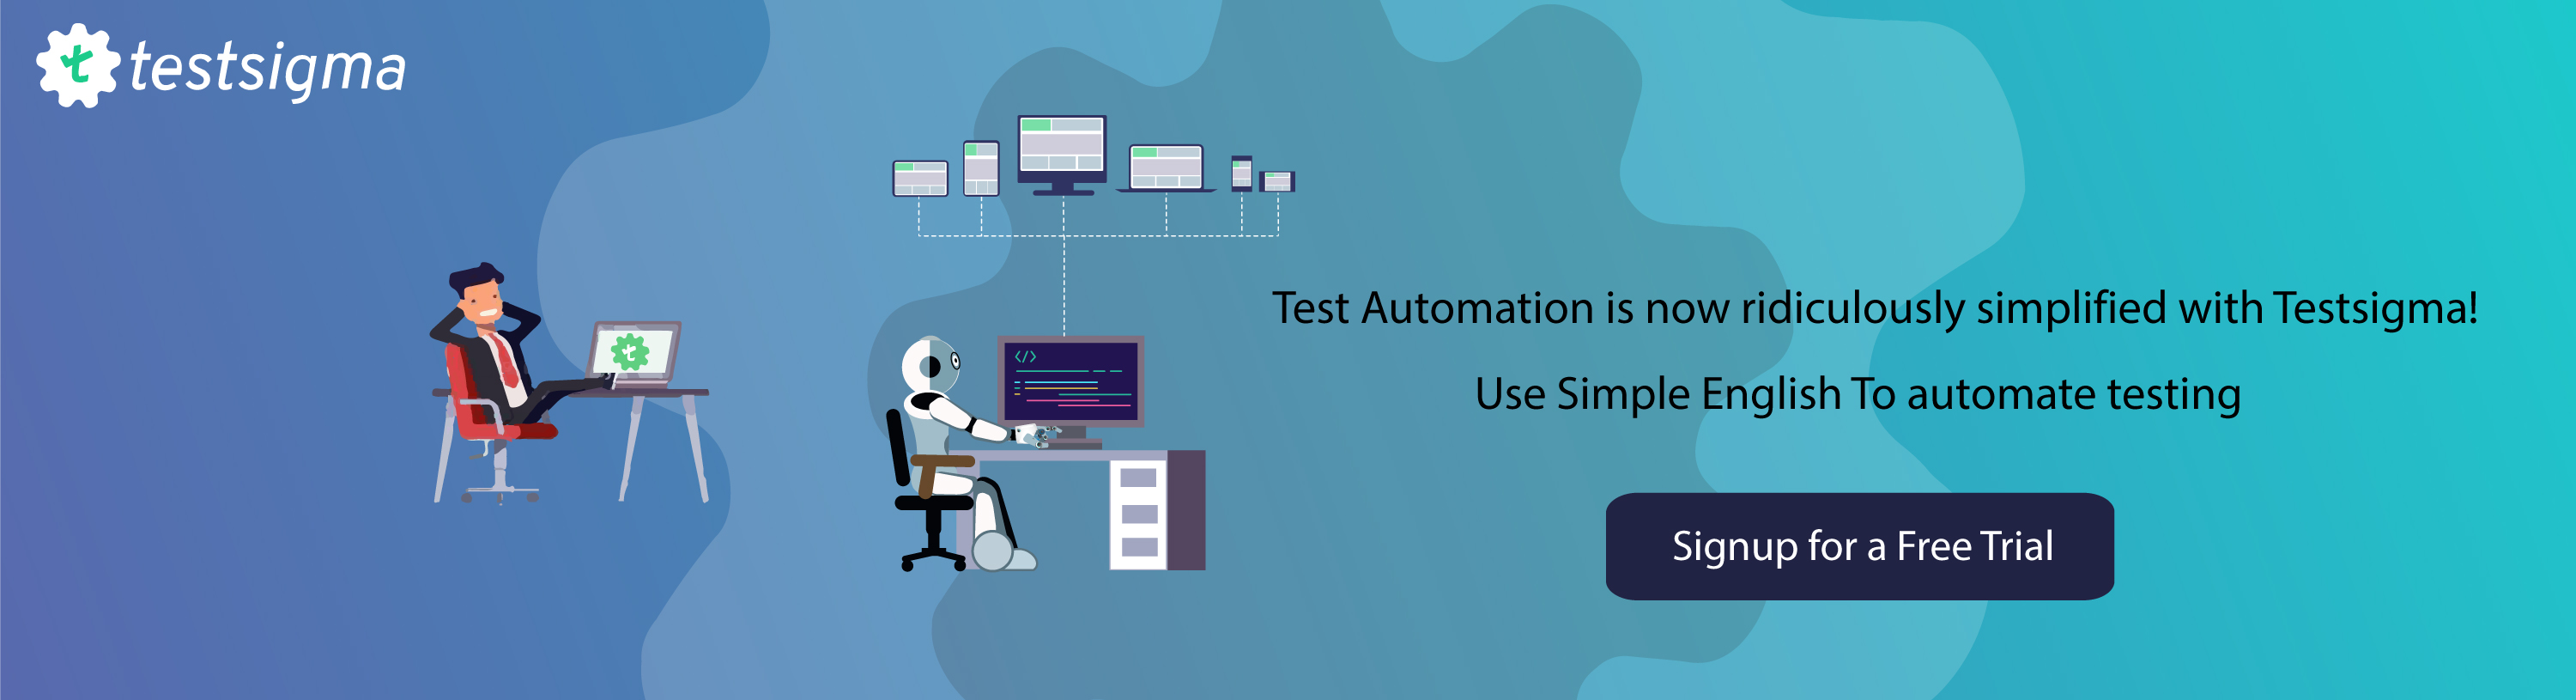 Test Automation simplified with Testsigma